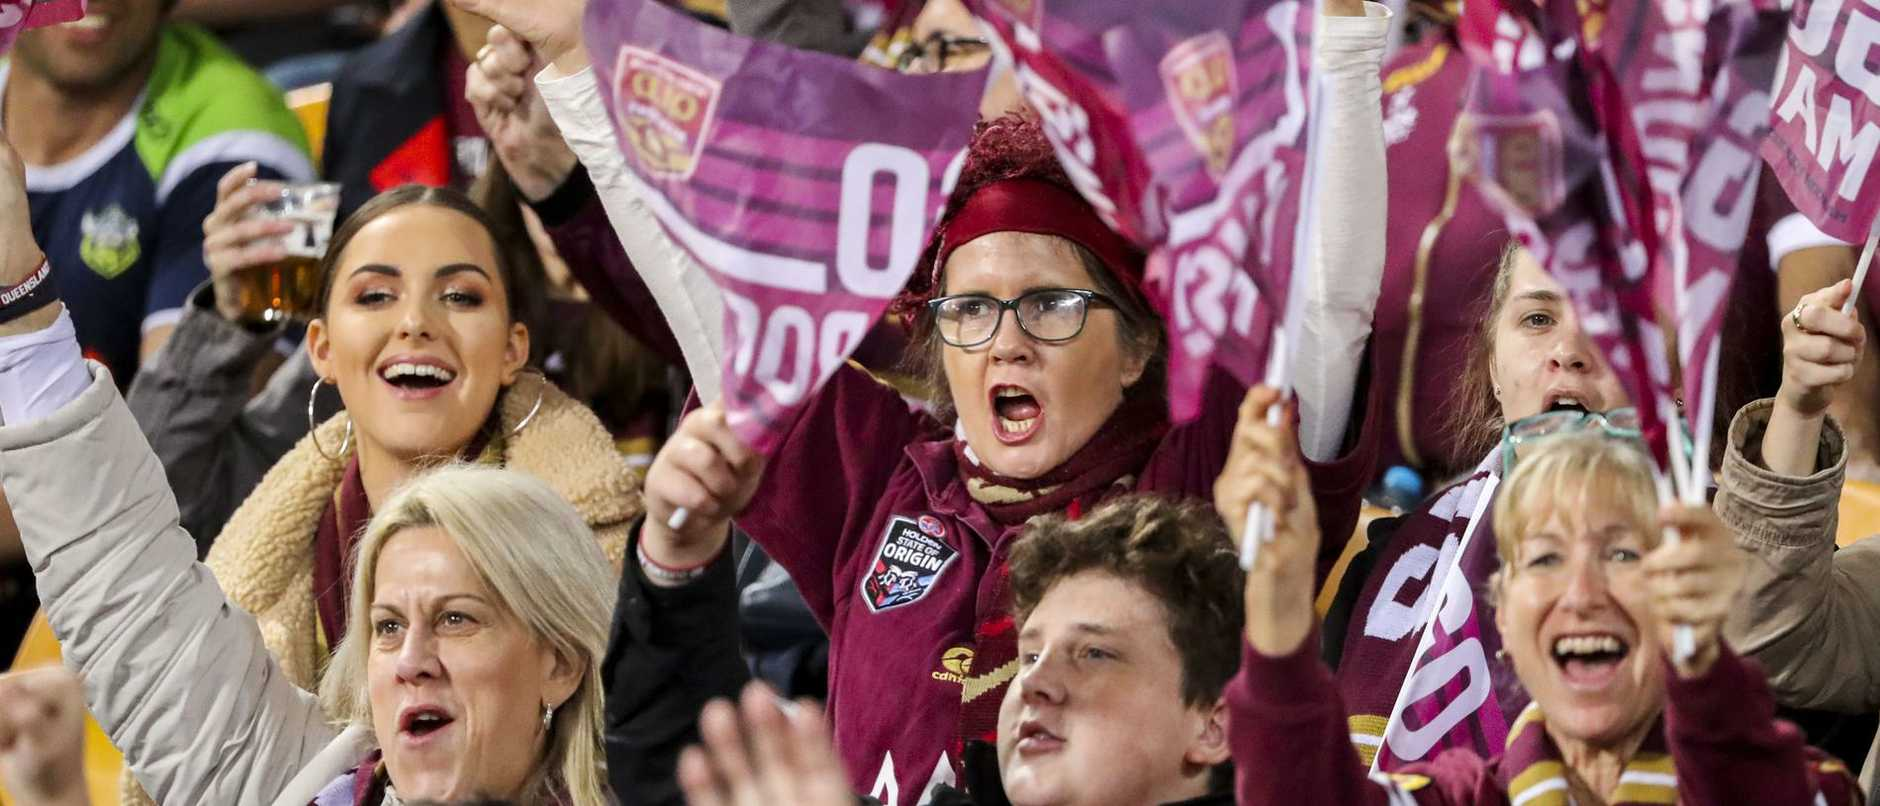 The long-awaited return of screaming footy fans to Queensland stadiums could be within weeks as NSW prepares to welcome back spectators to NRL games.